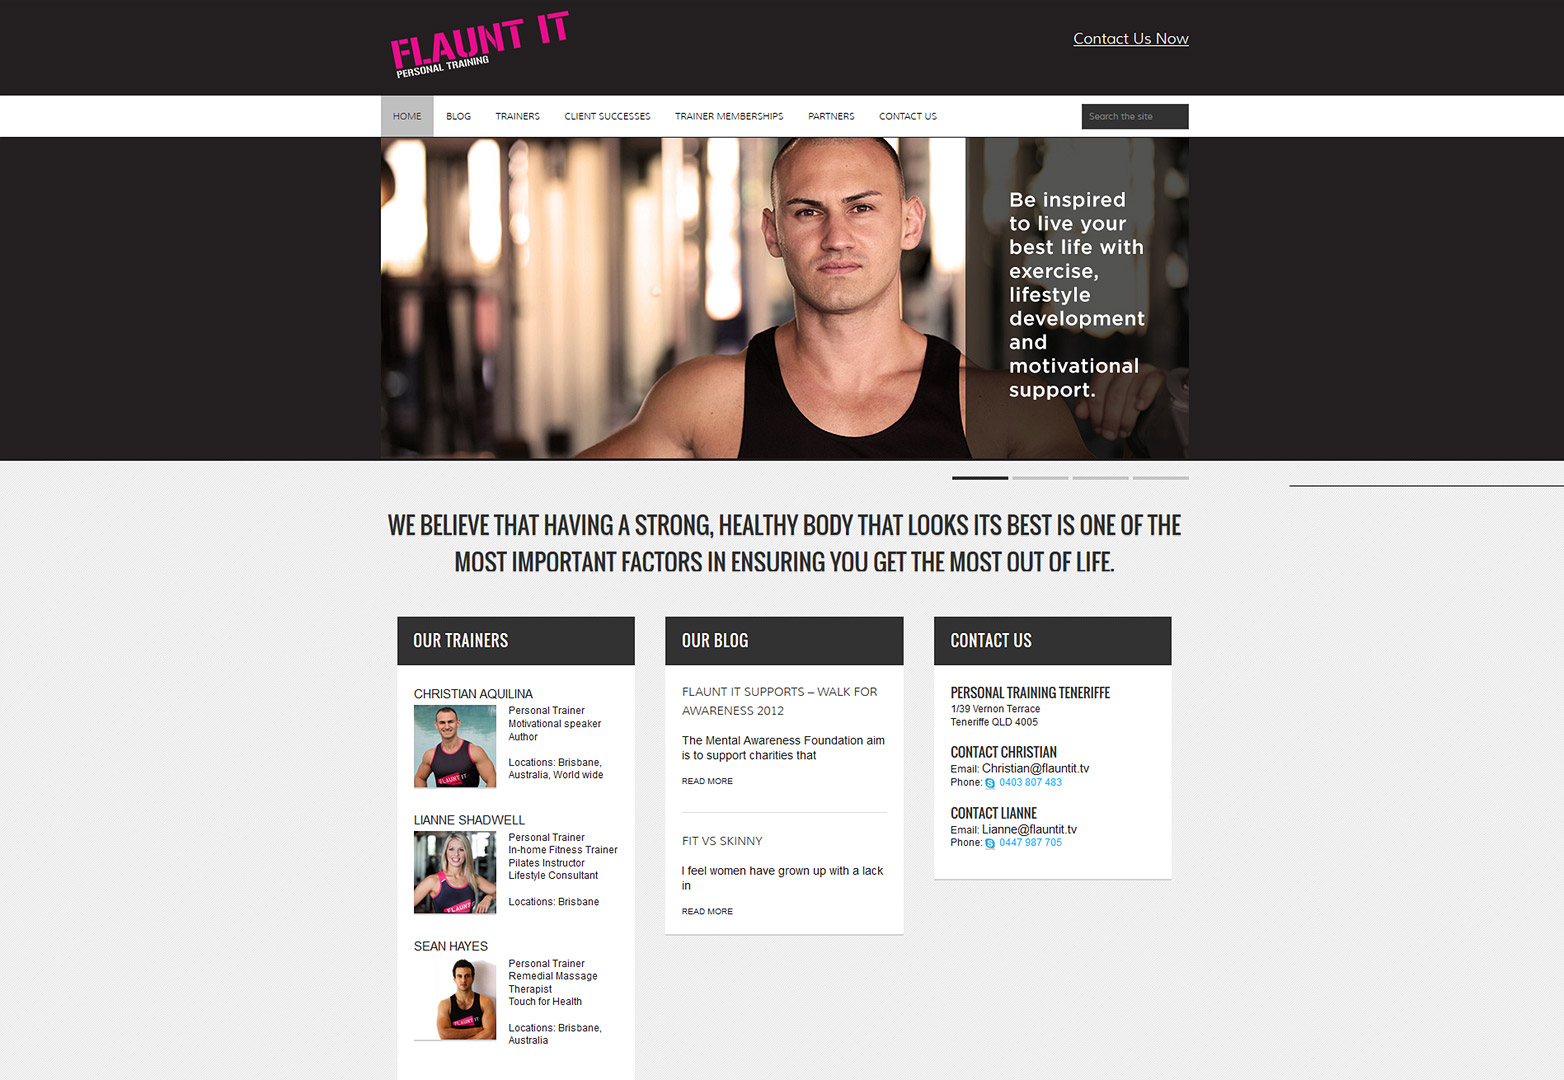 Flaunt It website screenshot of homepage